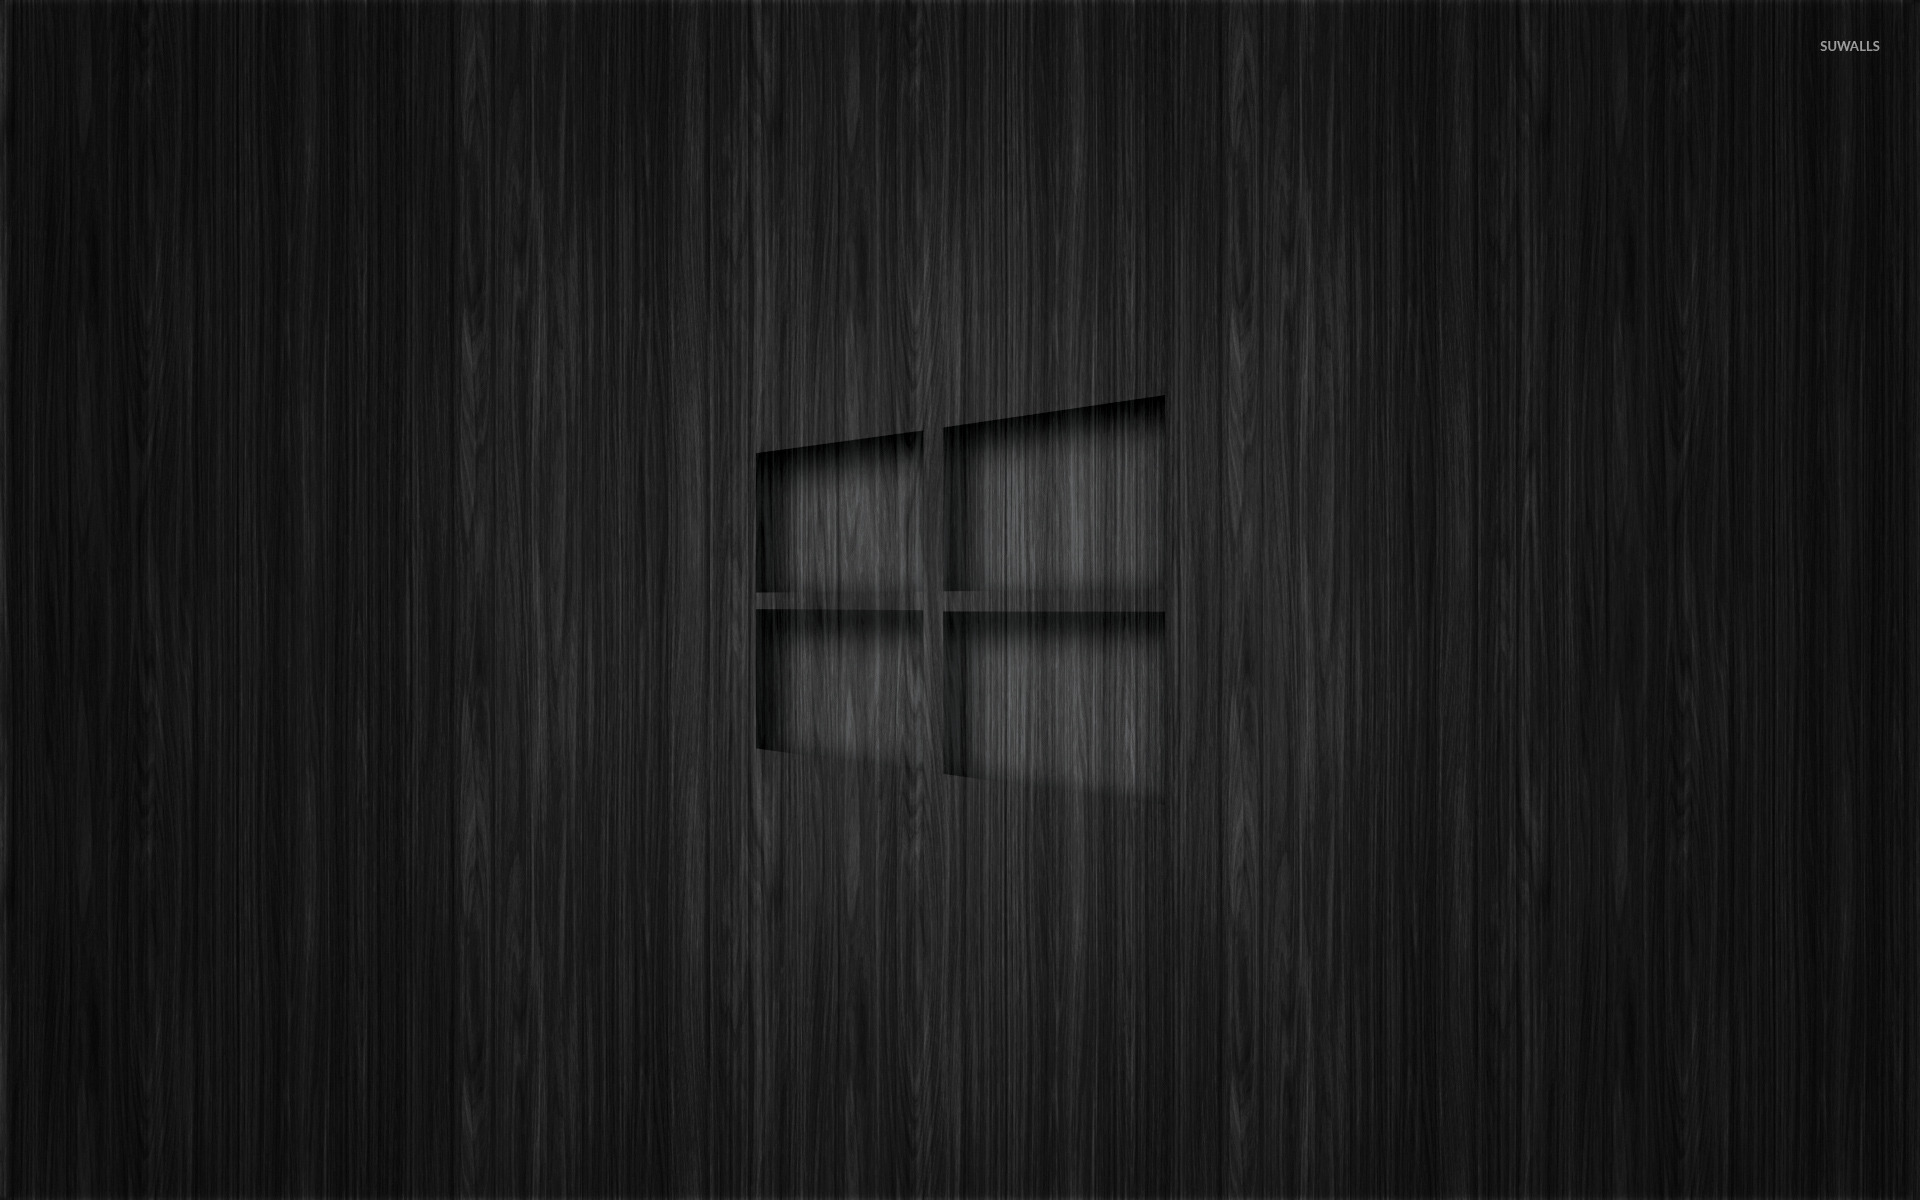 Windows 10 Transparent Logo On Dark Wood Wallpaper